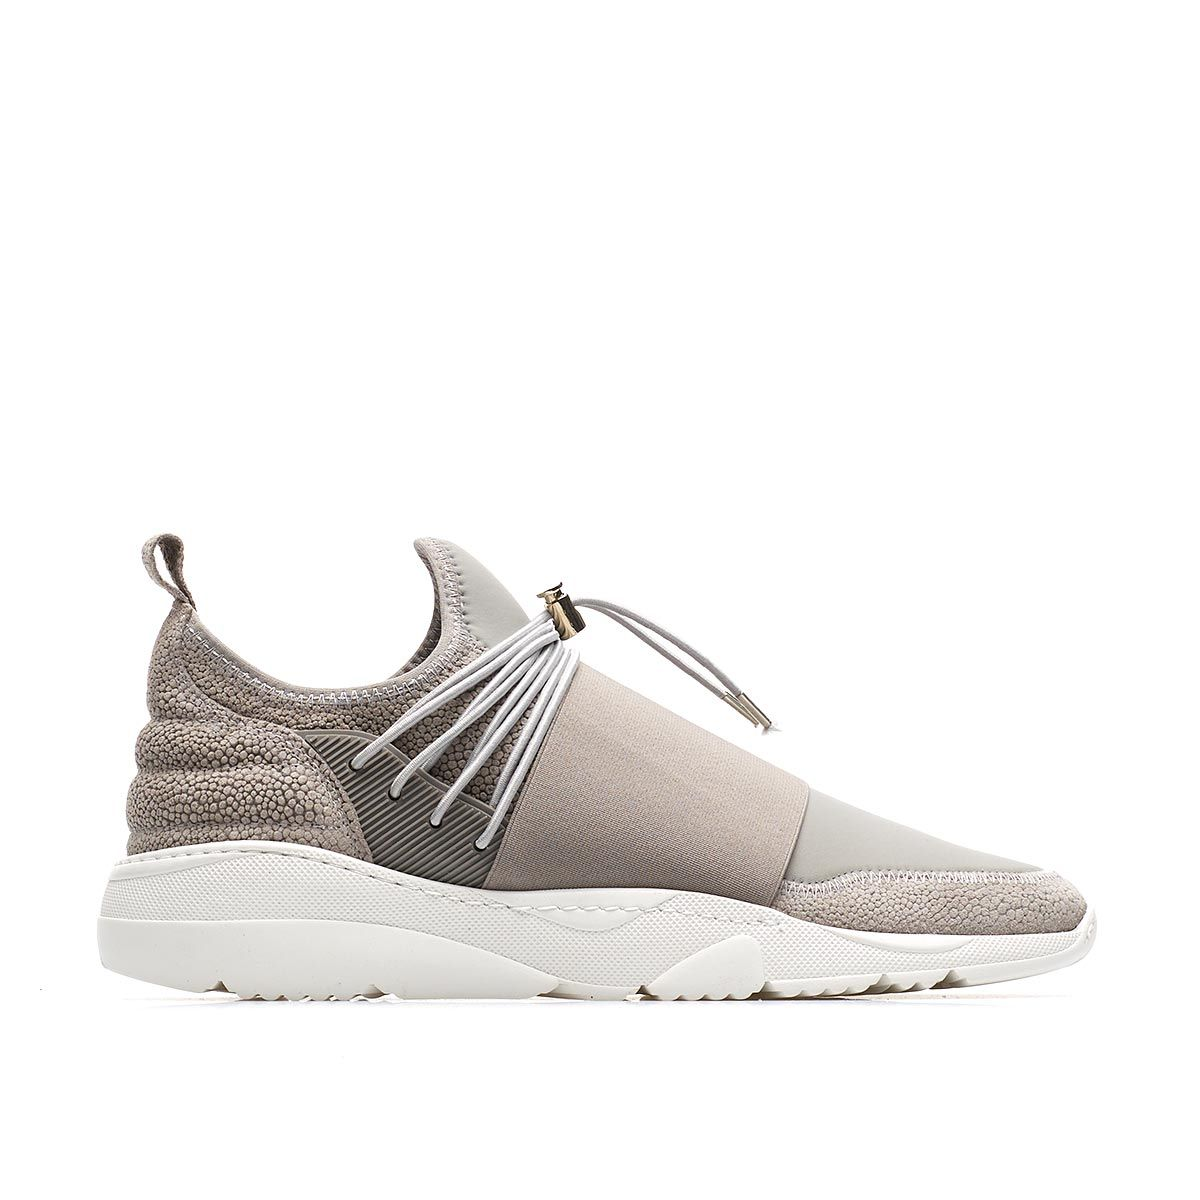 31b54bdb93644 Filling pieces Runner 3.0 Low Neopene Sneakers in Gray